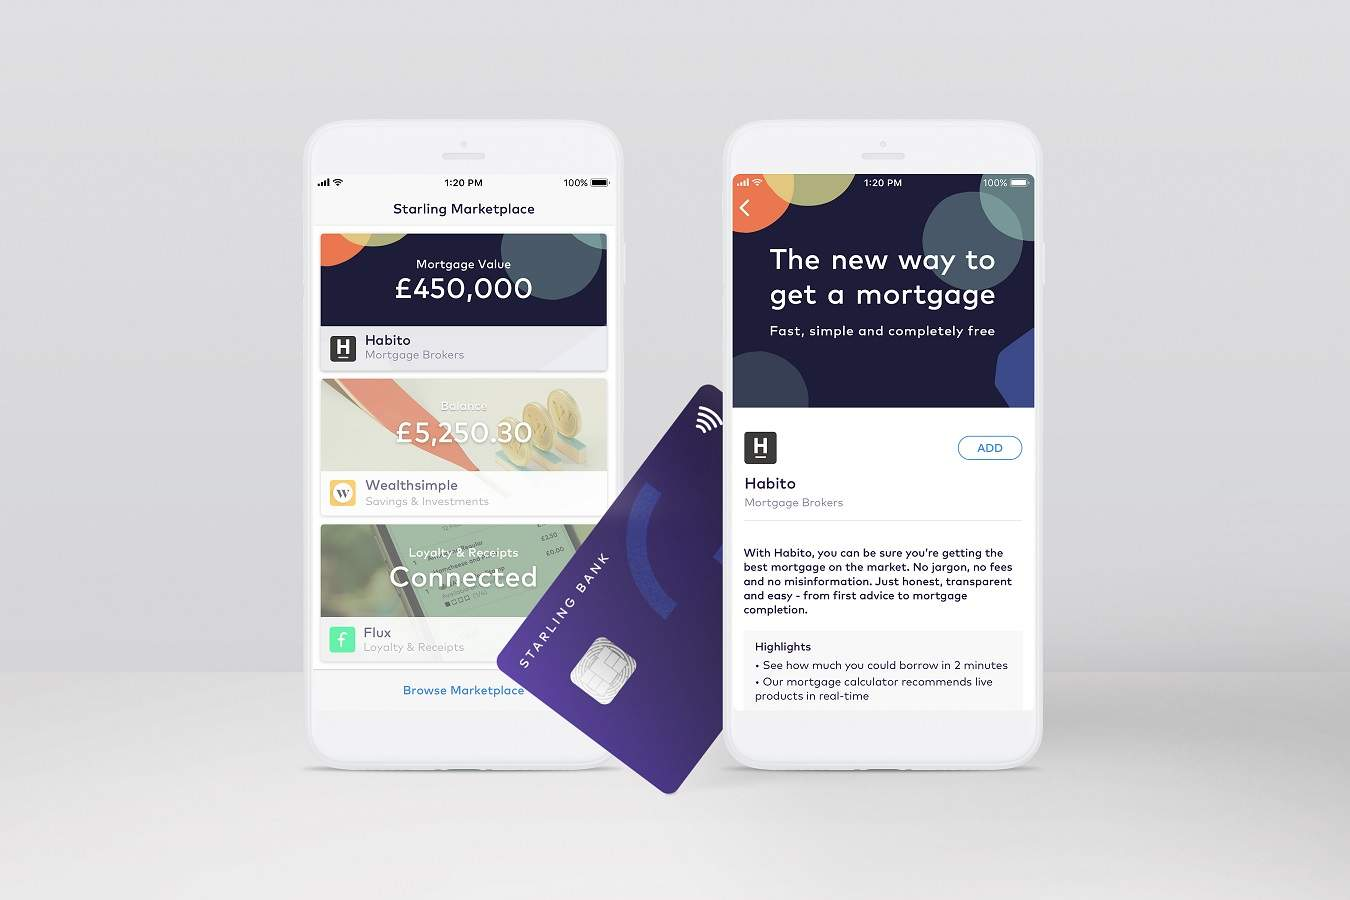 Starling Bank marketplace adds Growth Street